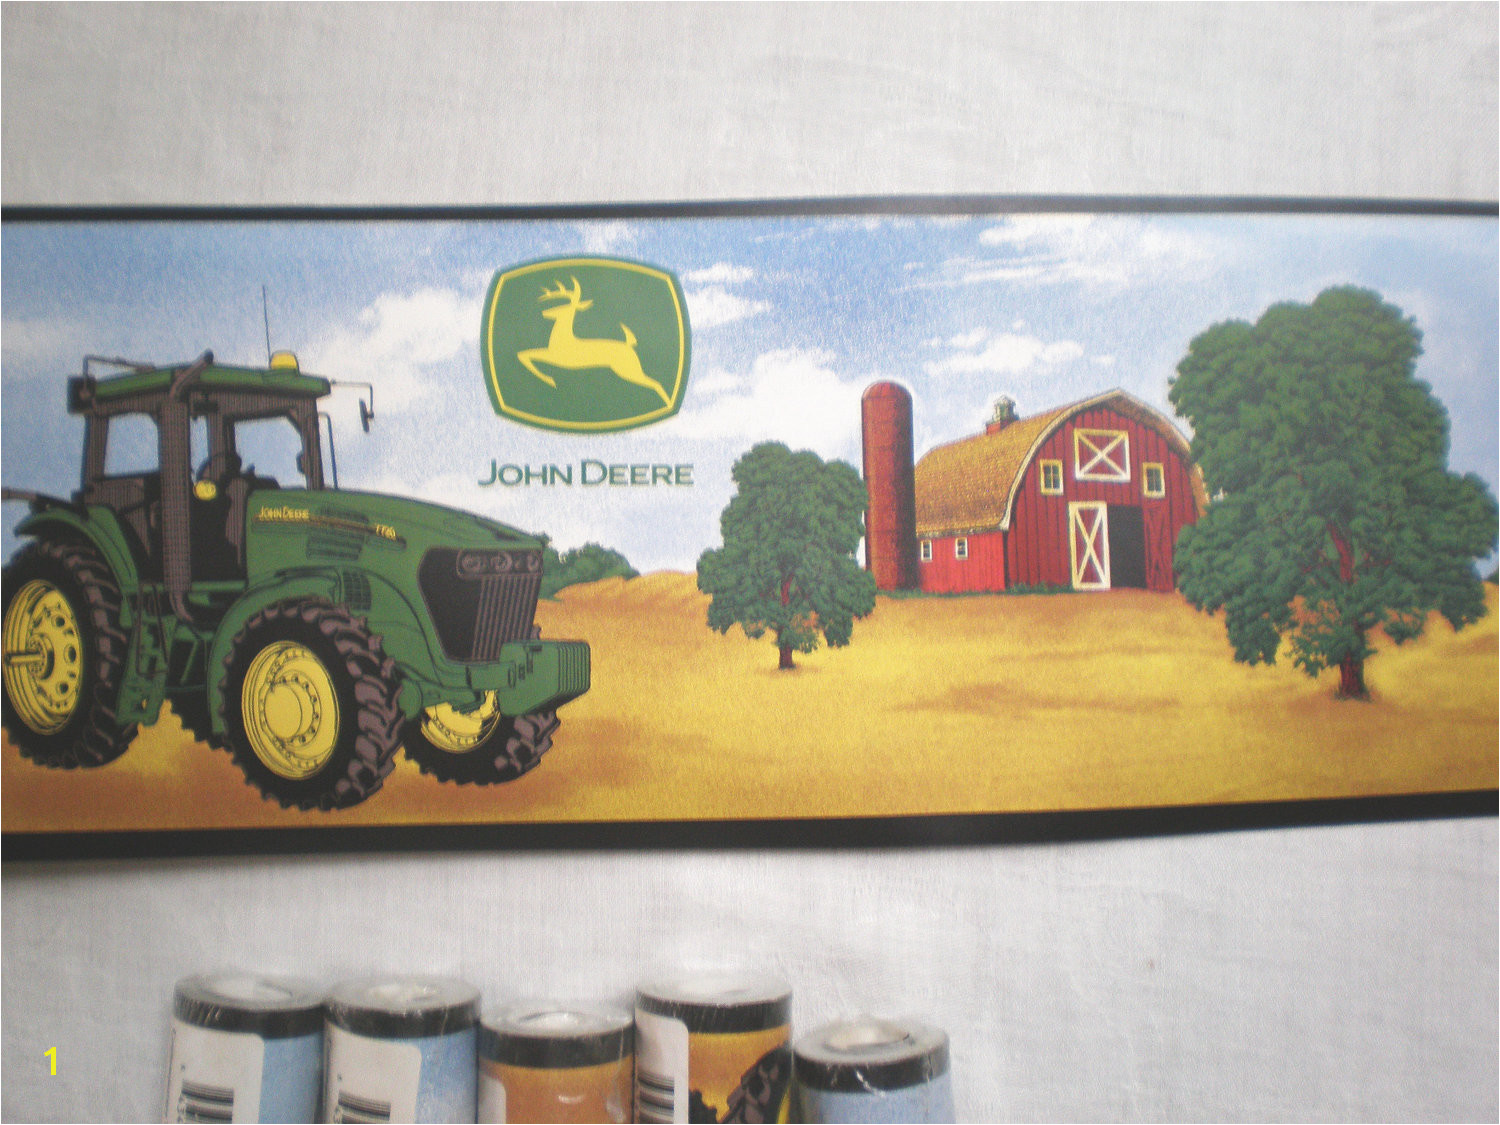 Rolls John Deere Tractor Wallpaper Border by TextilesandThings 1500x1125